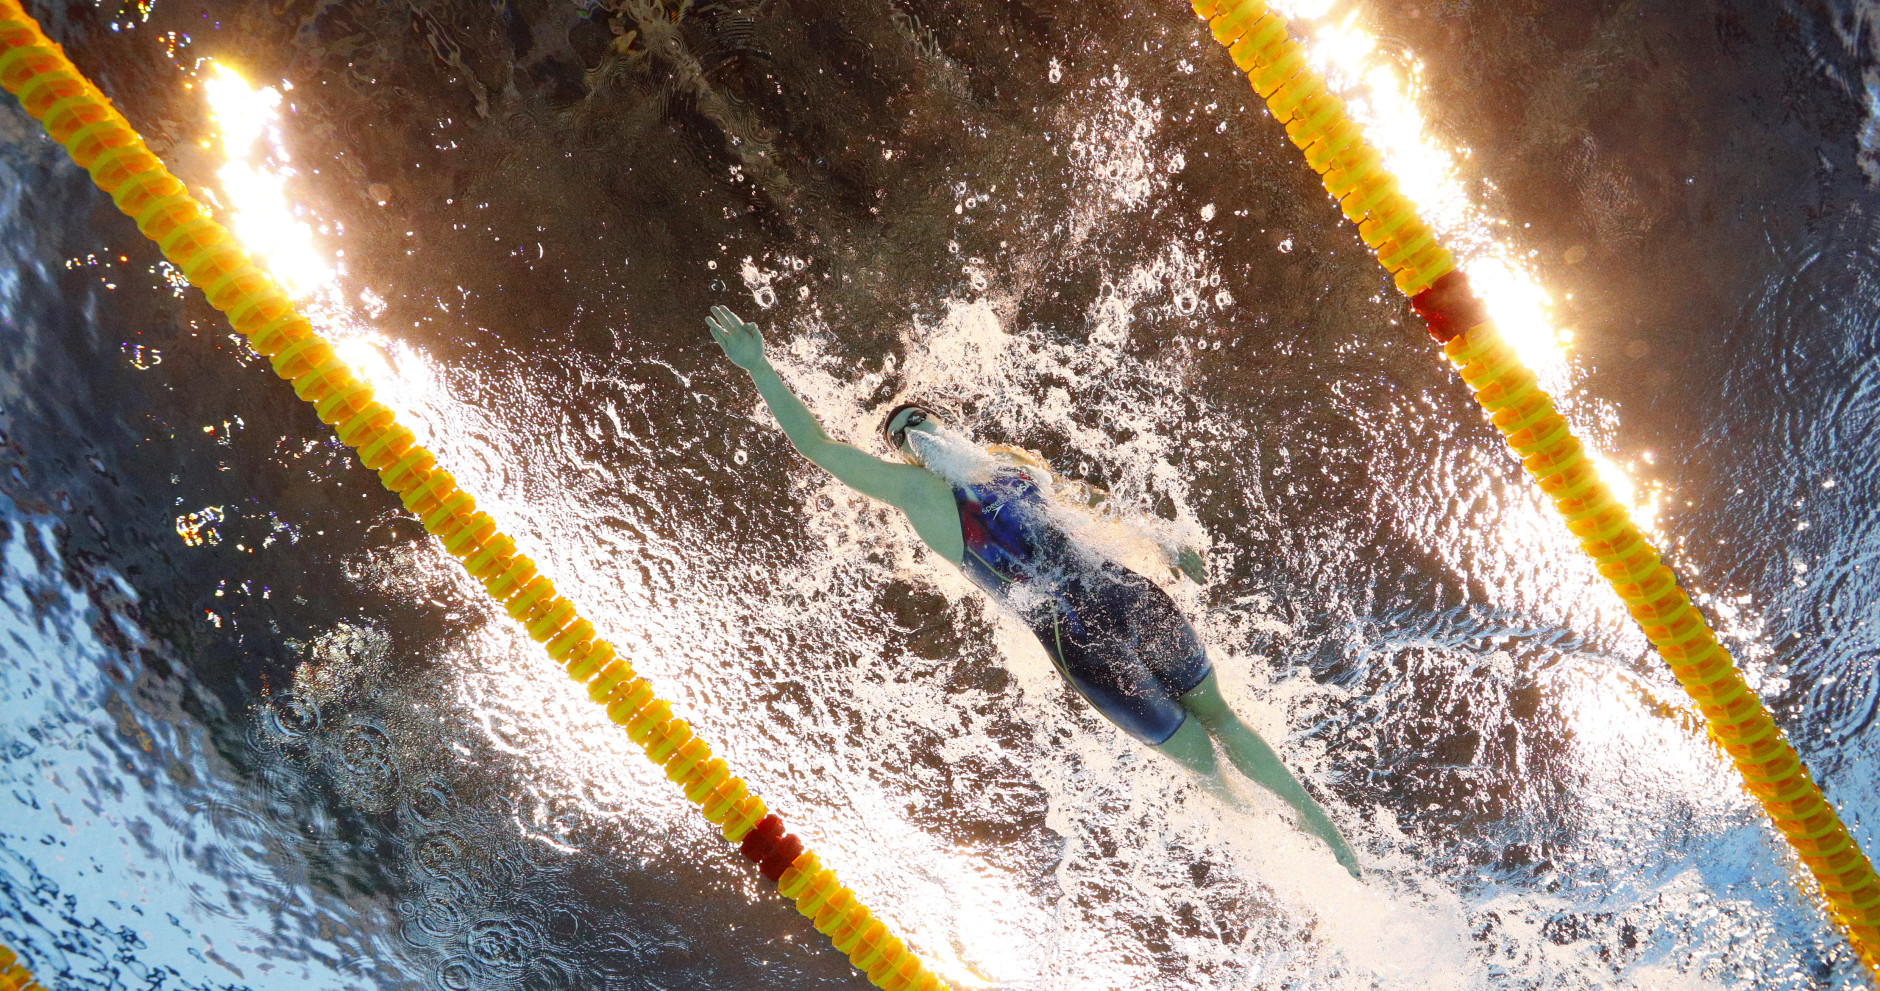 United States' Katie Ledecky competes in the final of the women's 400-meter freestyle during the swimming competitions at the 2016 Summer Olympics, Sunday, Aug. 7, 2016, in Rio de Janeiro, Brazil. (AP Photo/David J. Phillip)